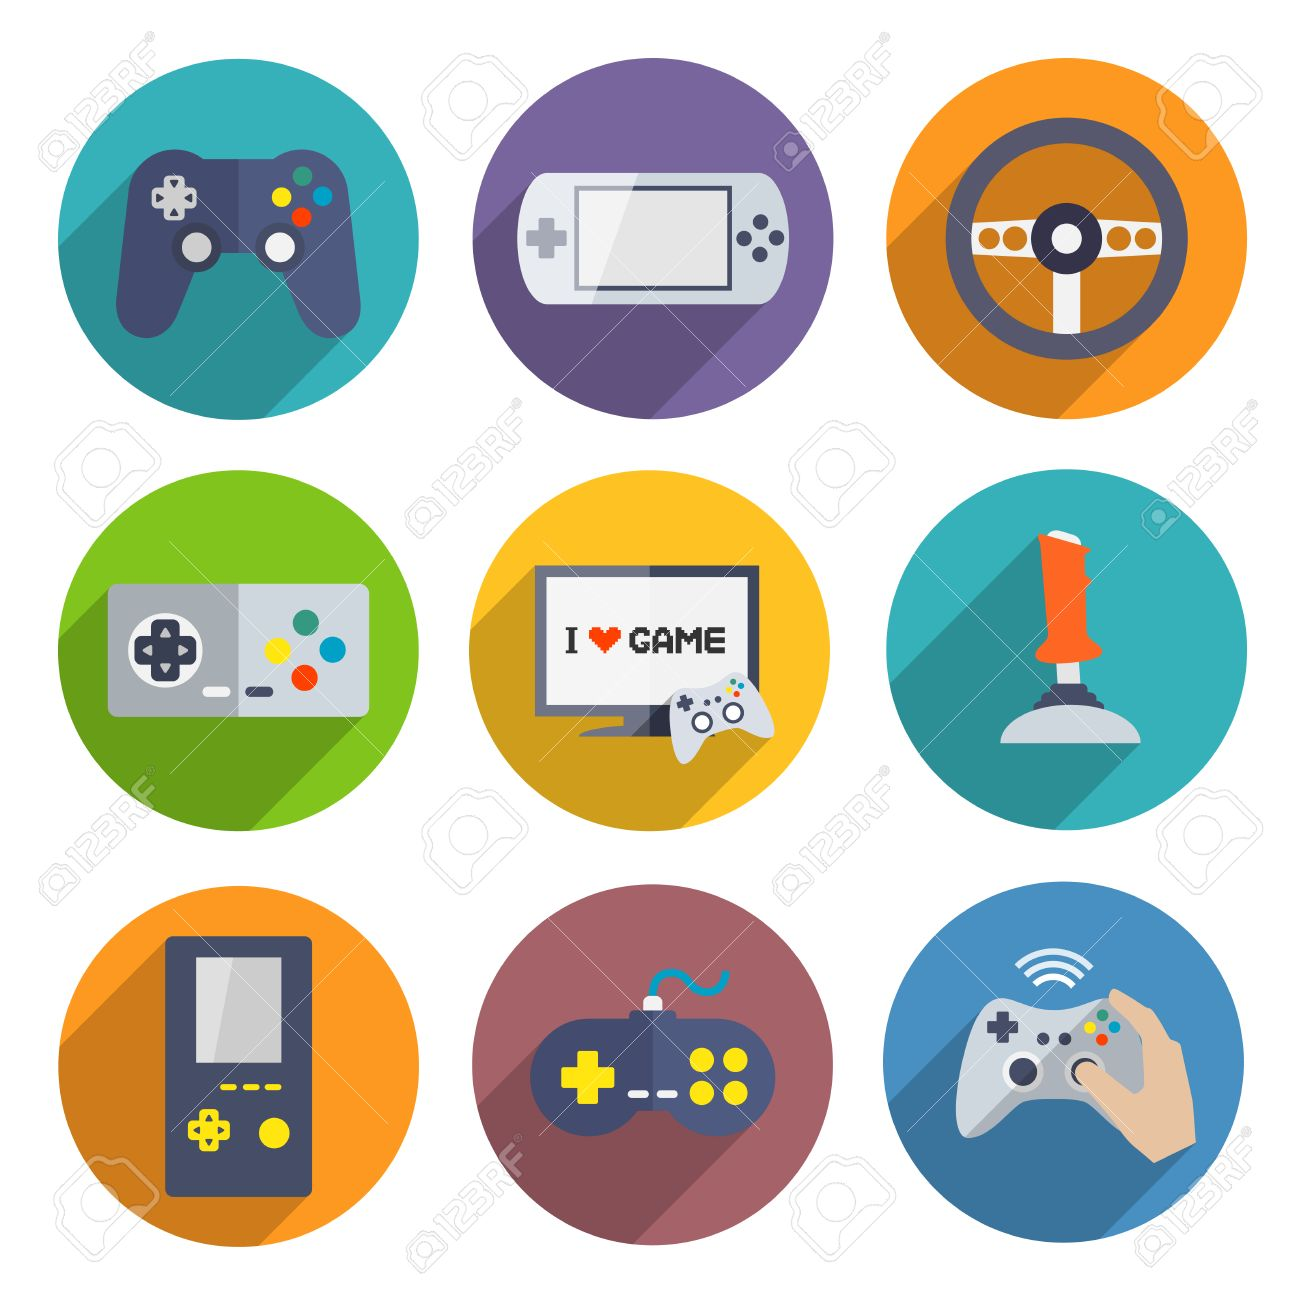 10,320 Video Game Controller Stock Illustrations, Cliparts And.